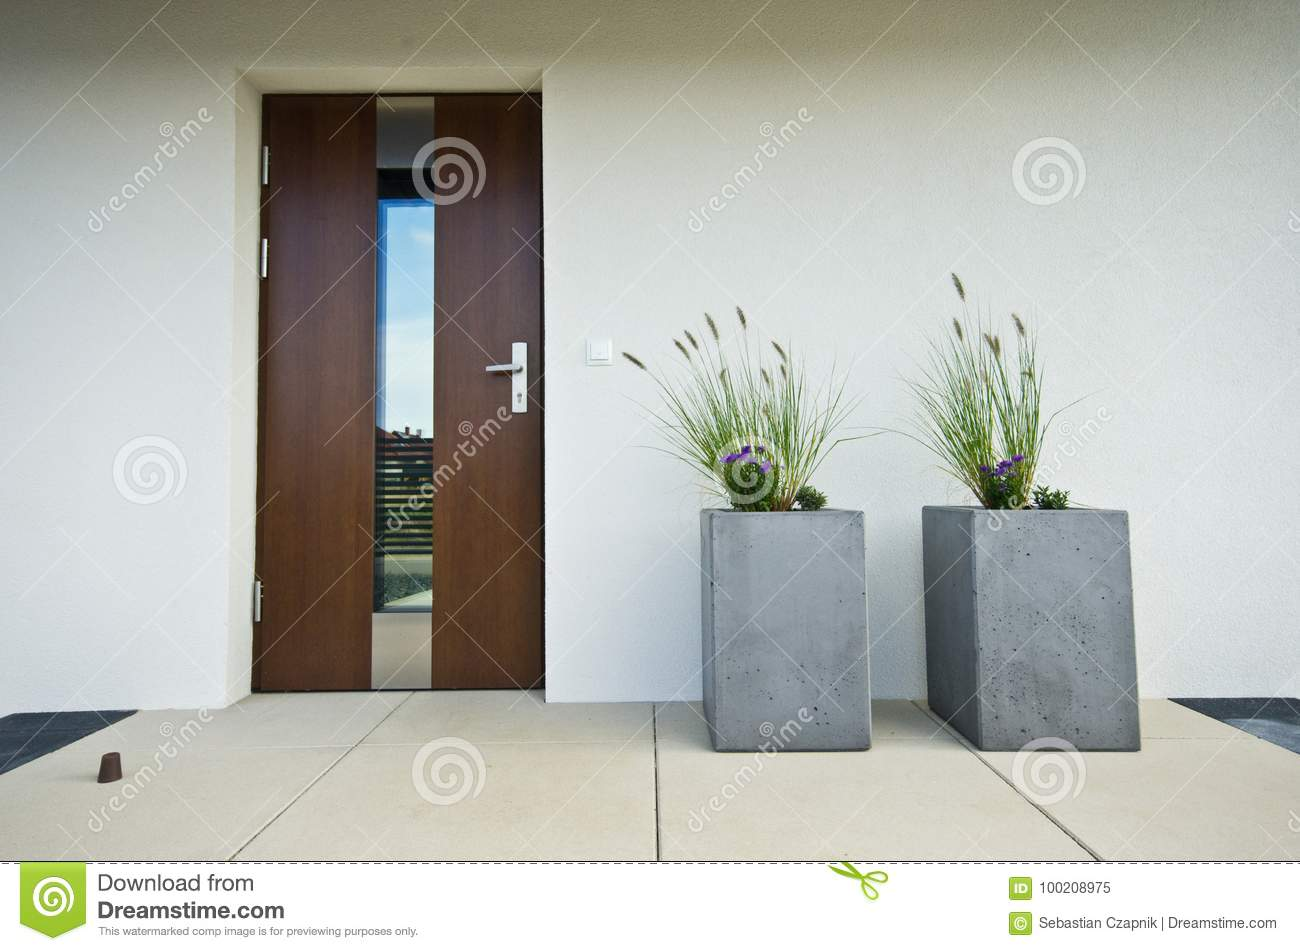 Two Cubic Concrete Flower Pots At Front Door Of A House Stock Image ...